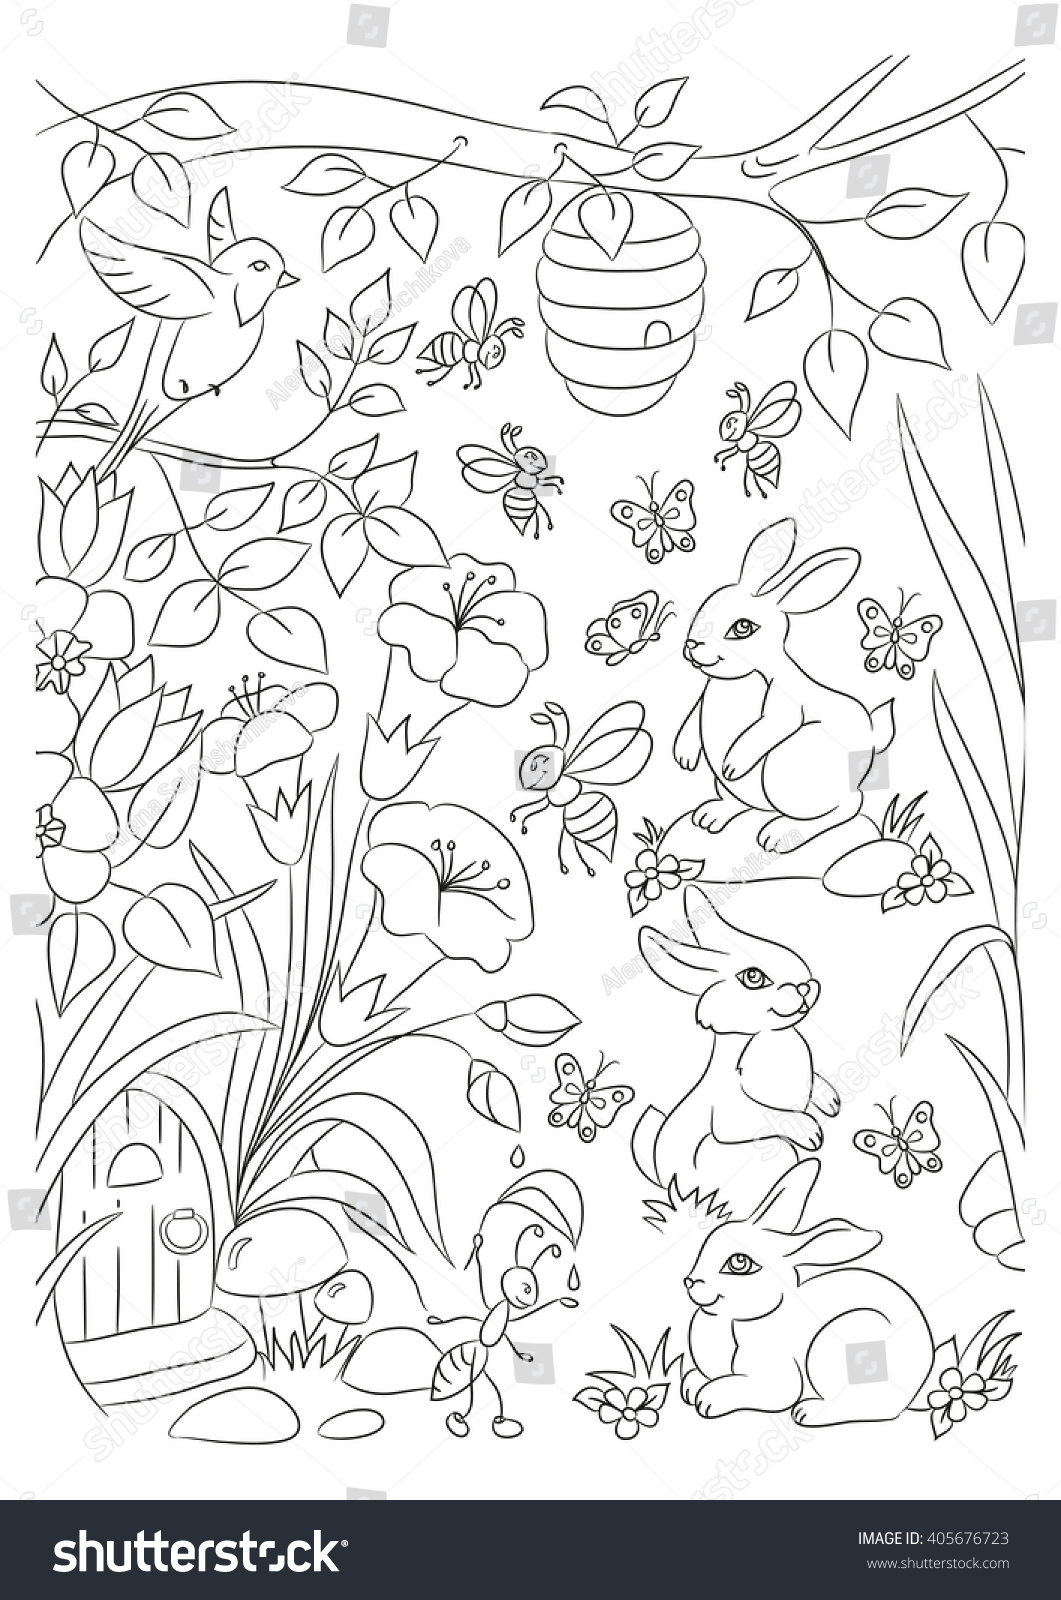 forest animals coloring page images about woodland on pinterest forest animals color coloring